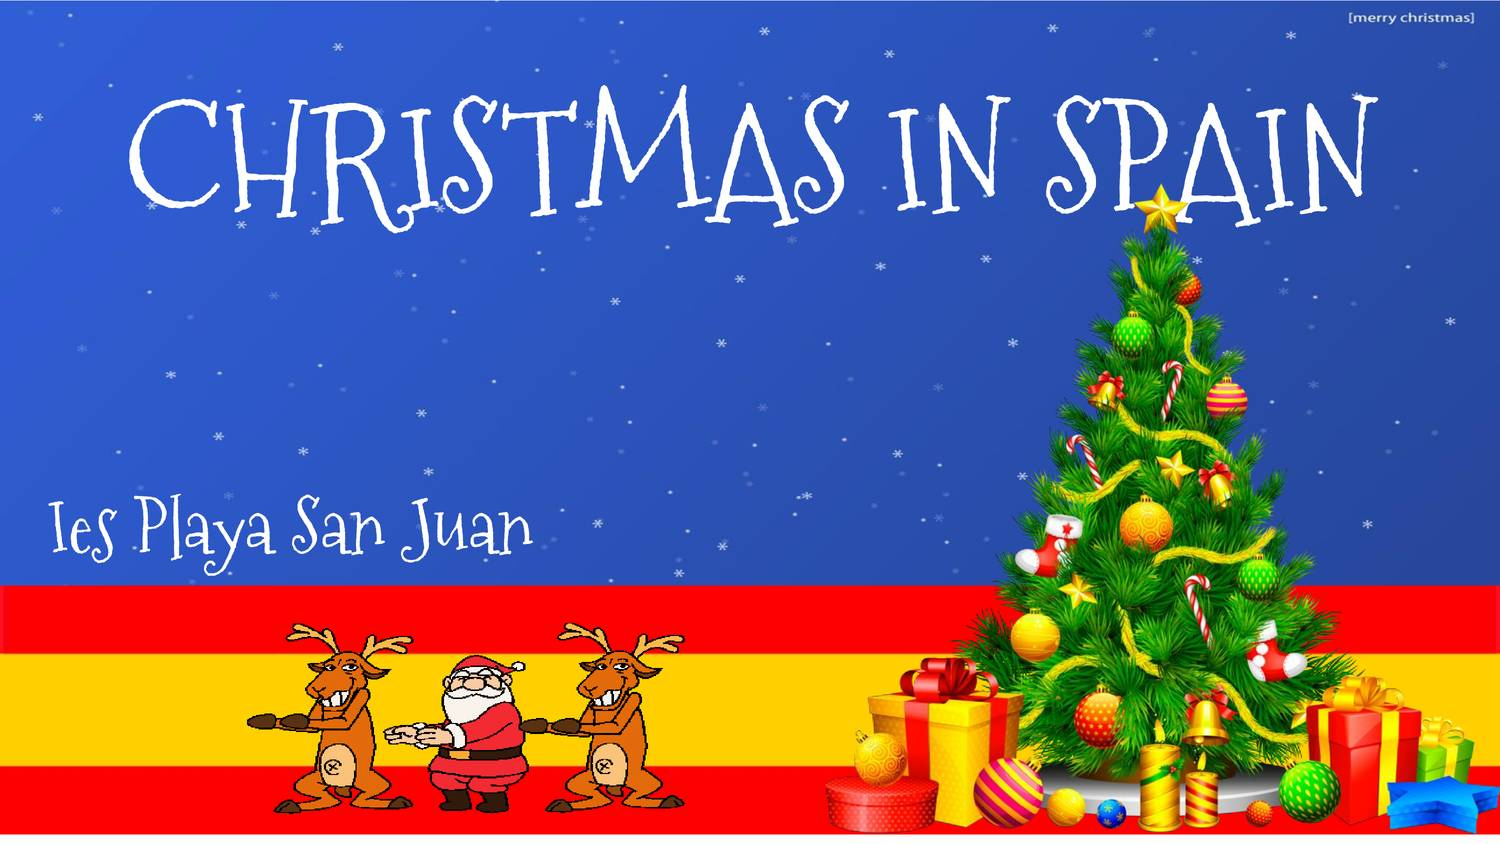 Christmas Traditions In Spain.Christmas Traditions In Spain Pdf Docdroid